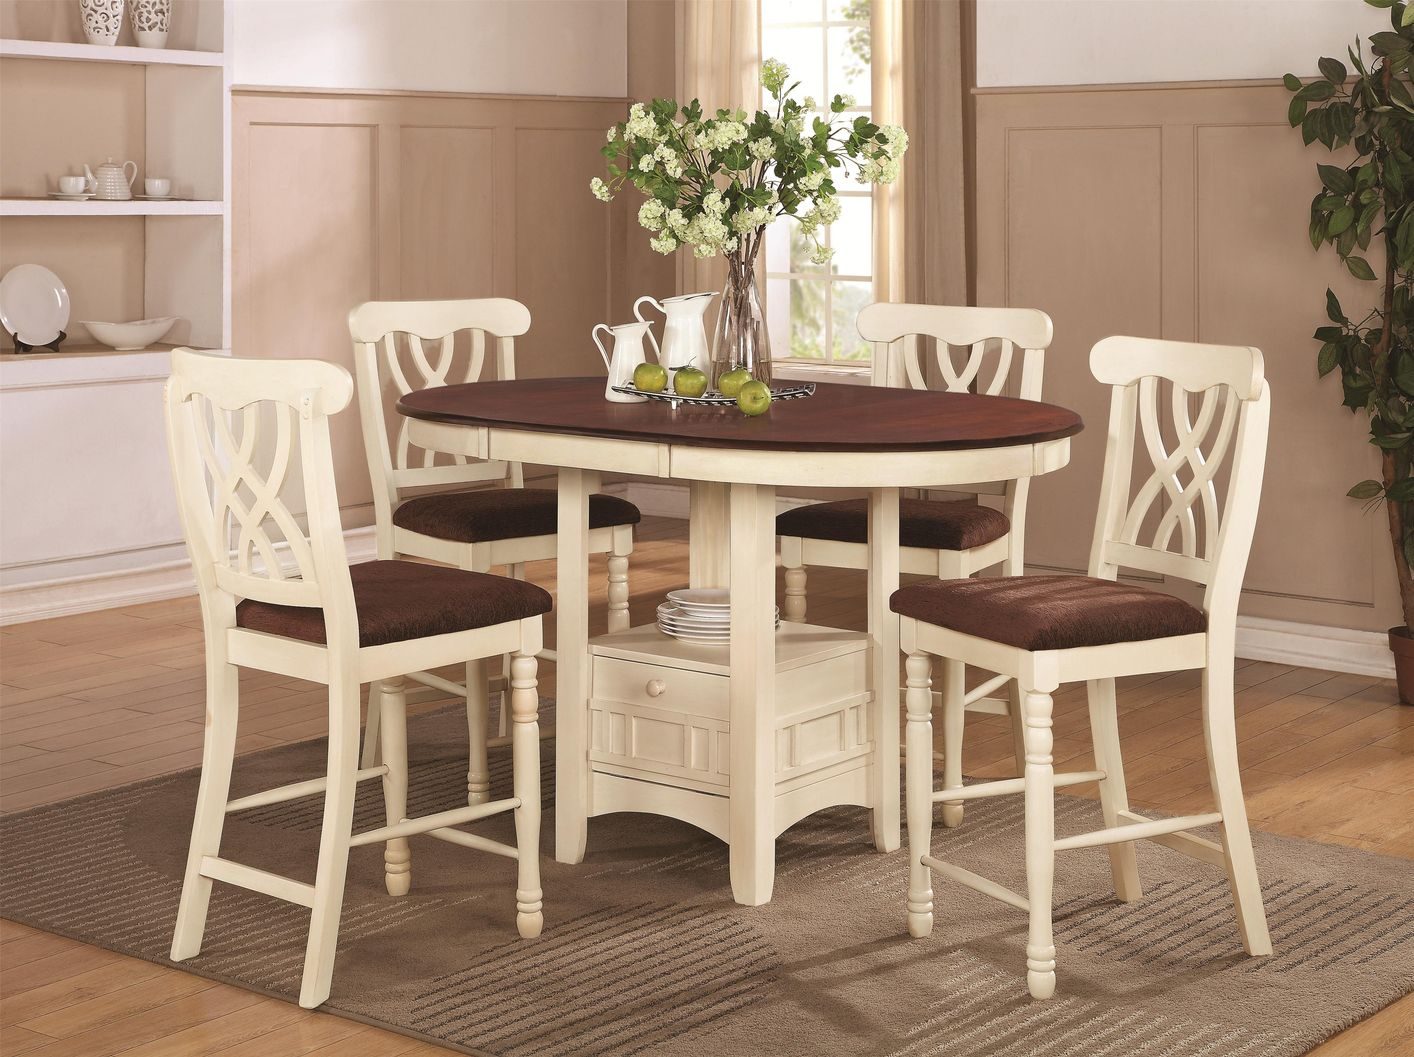 Addison White And Cherry Wood Pub Table Set : white round kitchen table and chairs - Cheerinfomania.Com